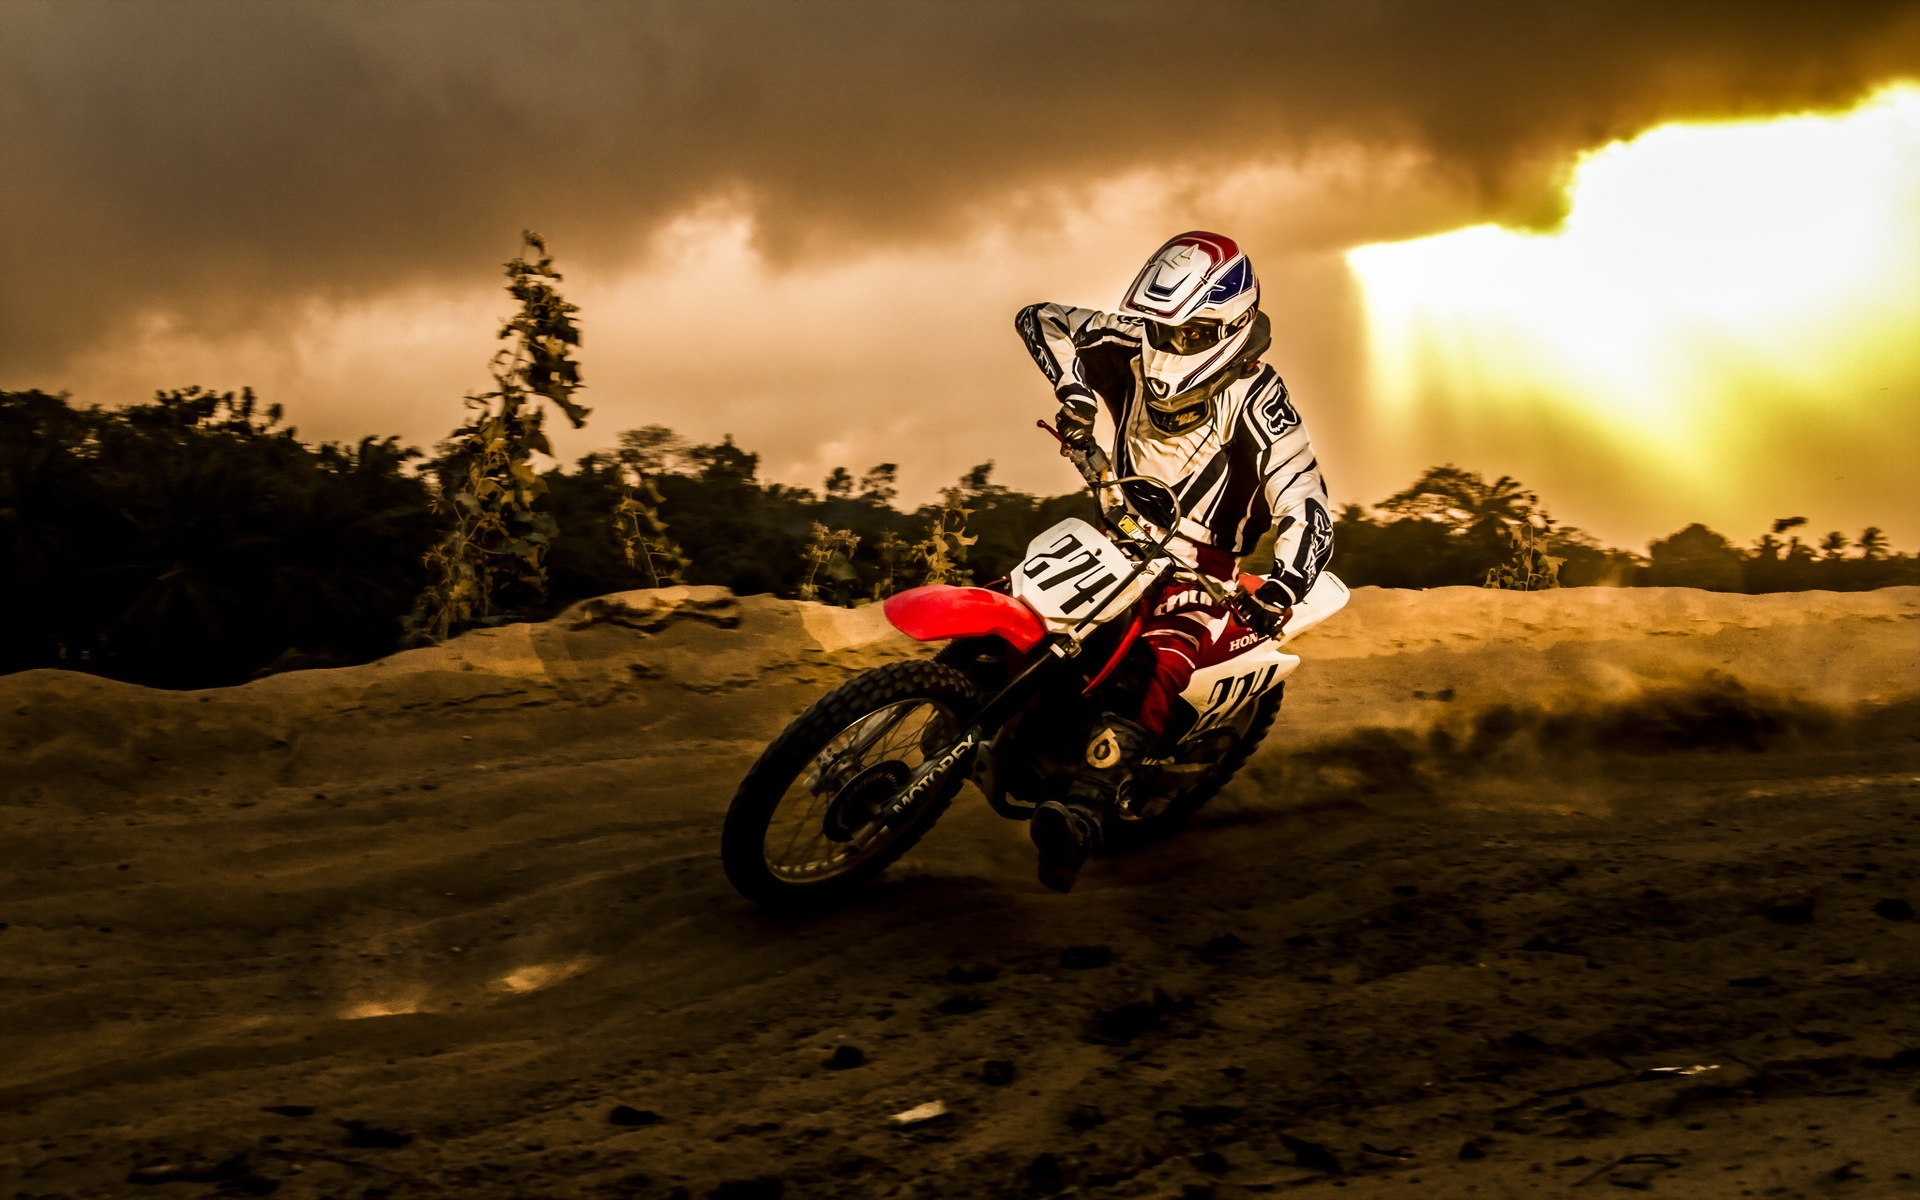 You Can Download Motocross Wallpaper Hd In Your Computer By